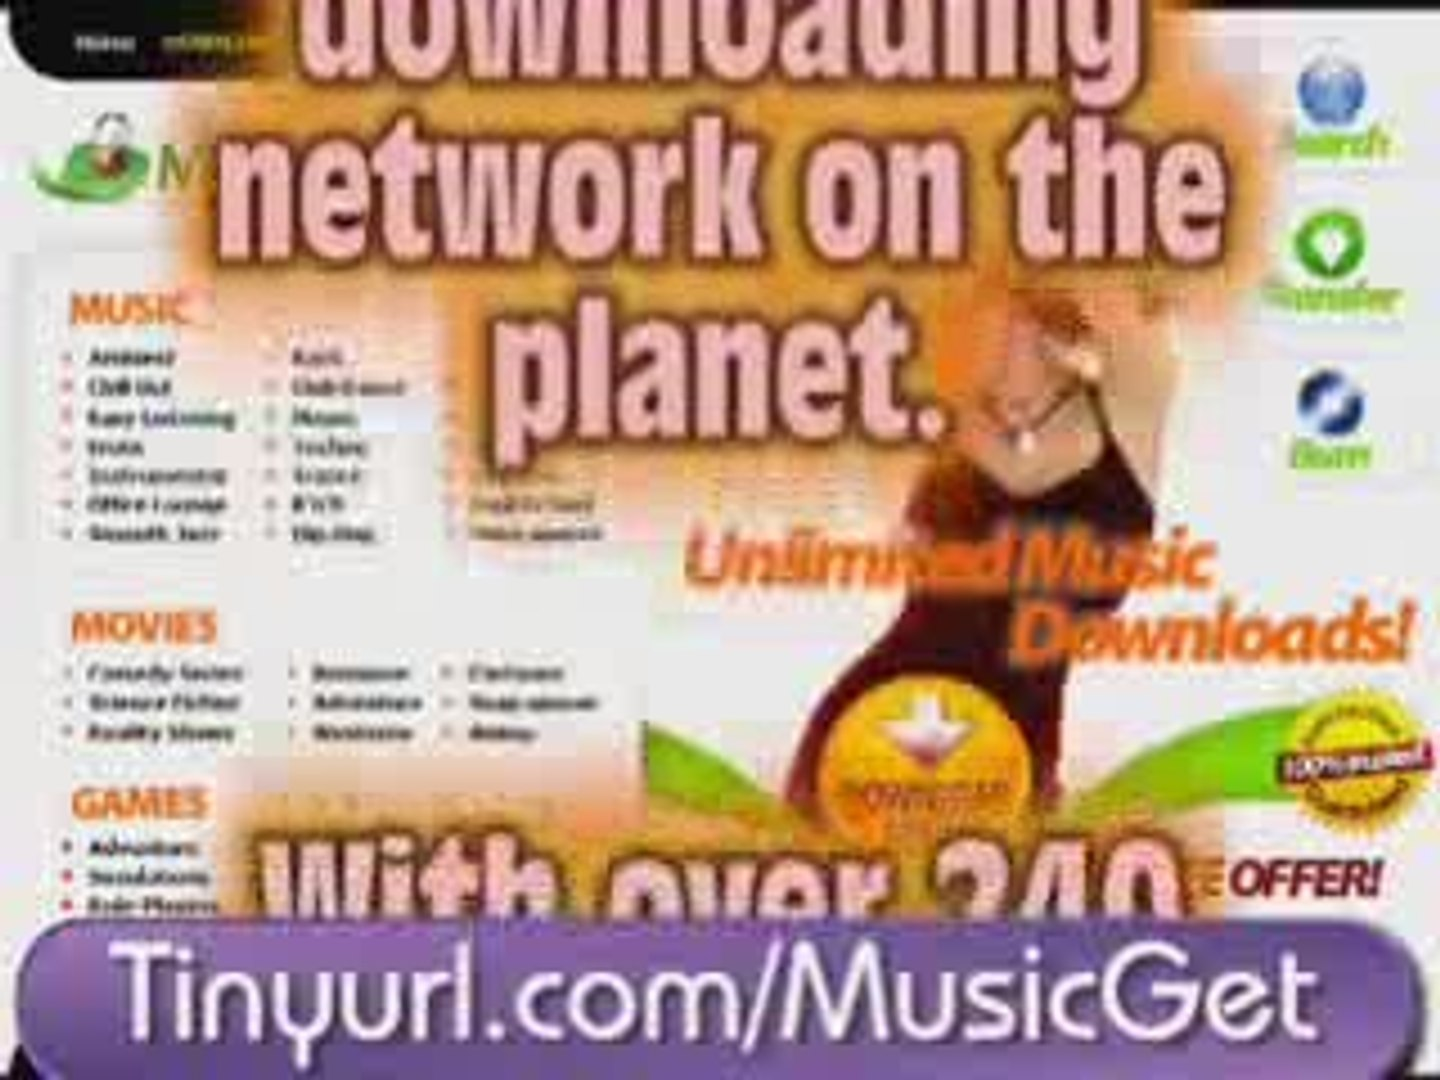 Download Music Online - Unlimited Music Downloads!